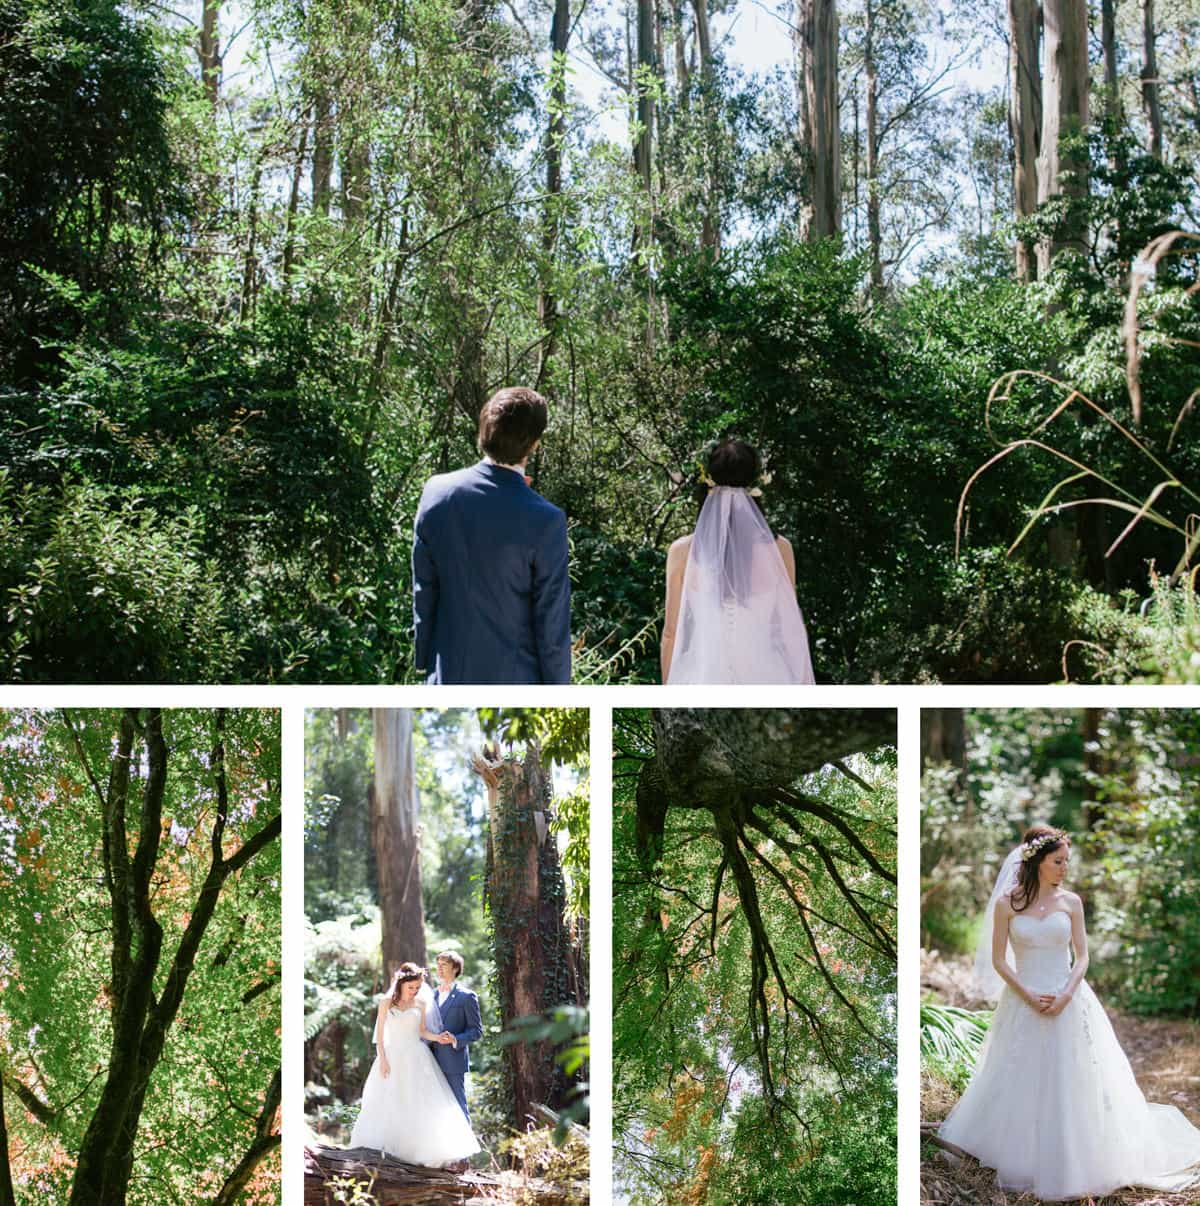 nature wedding photography in melbourne - best photographer for outdoor weddings in melbourne forest